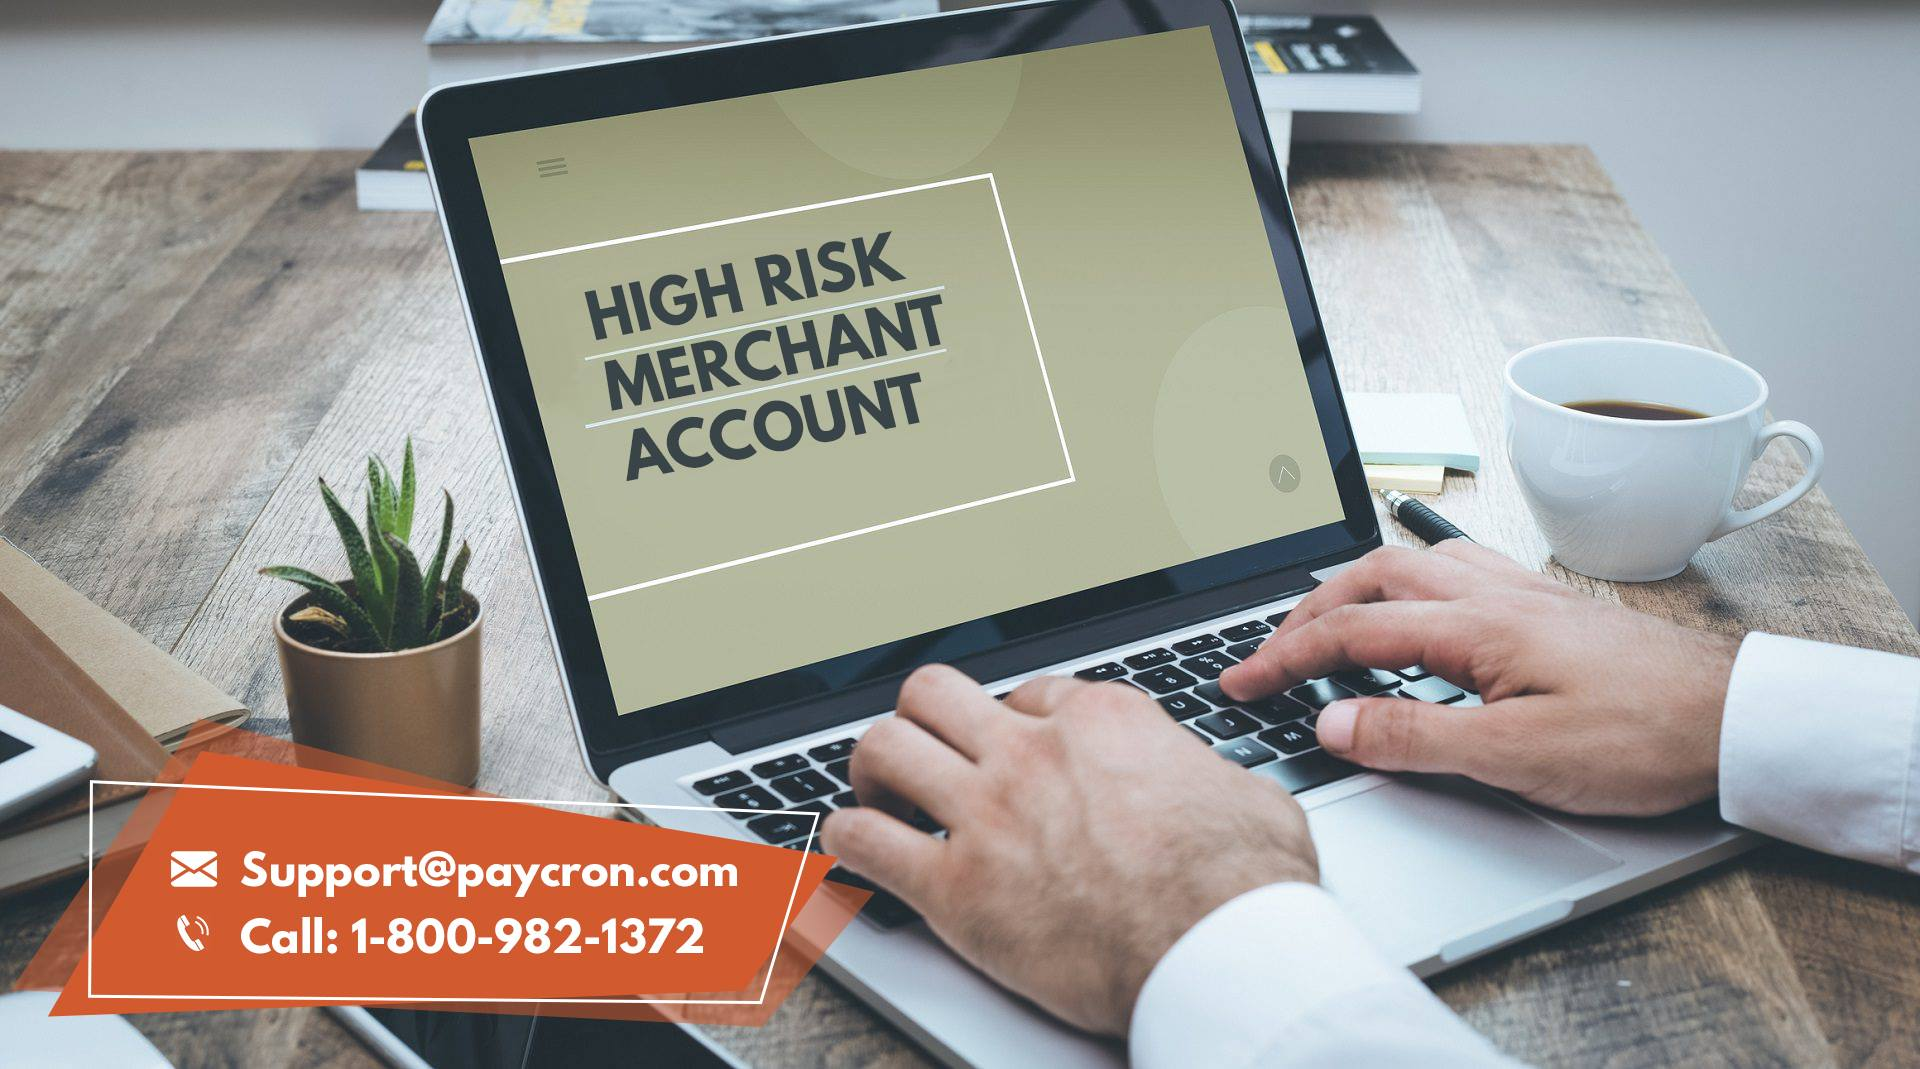 Merchant accounts for high risk businesses